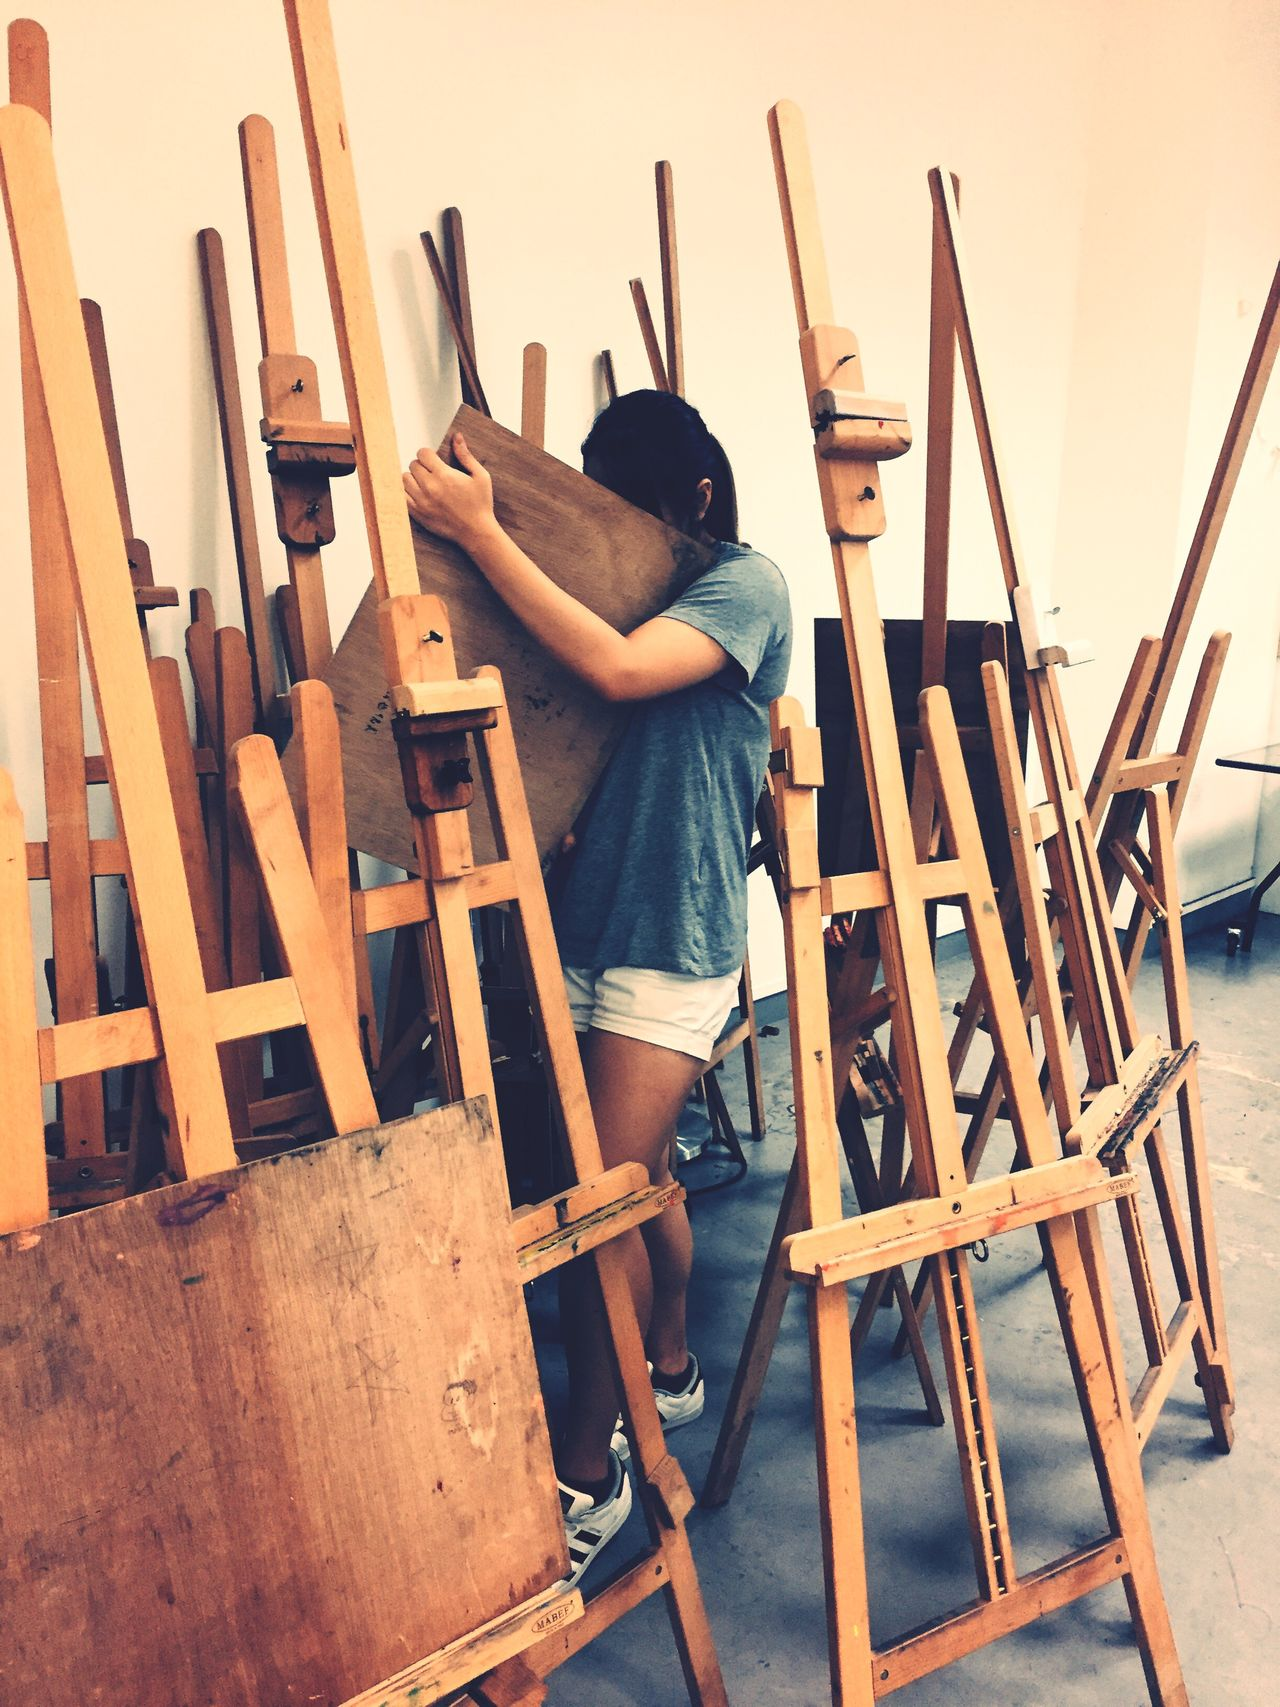 Art And Craft Paintbrush Easel Creativity Artist Lifestyles Sitting Wood - Material Chair Artist's Canvas Indoors  Day One Person Studio Painter - Artist Workshop People